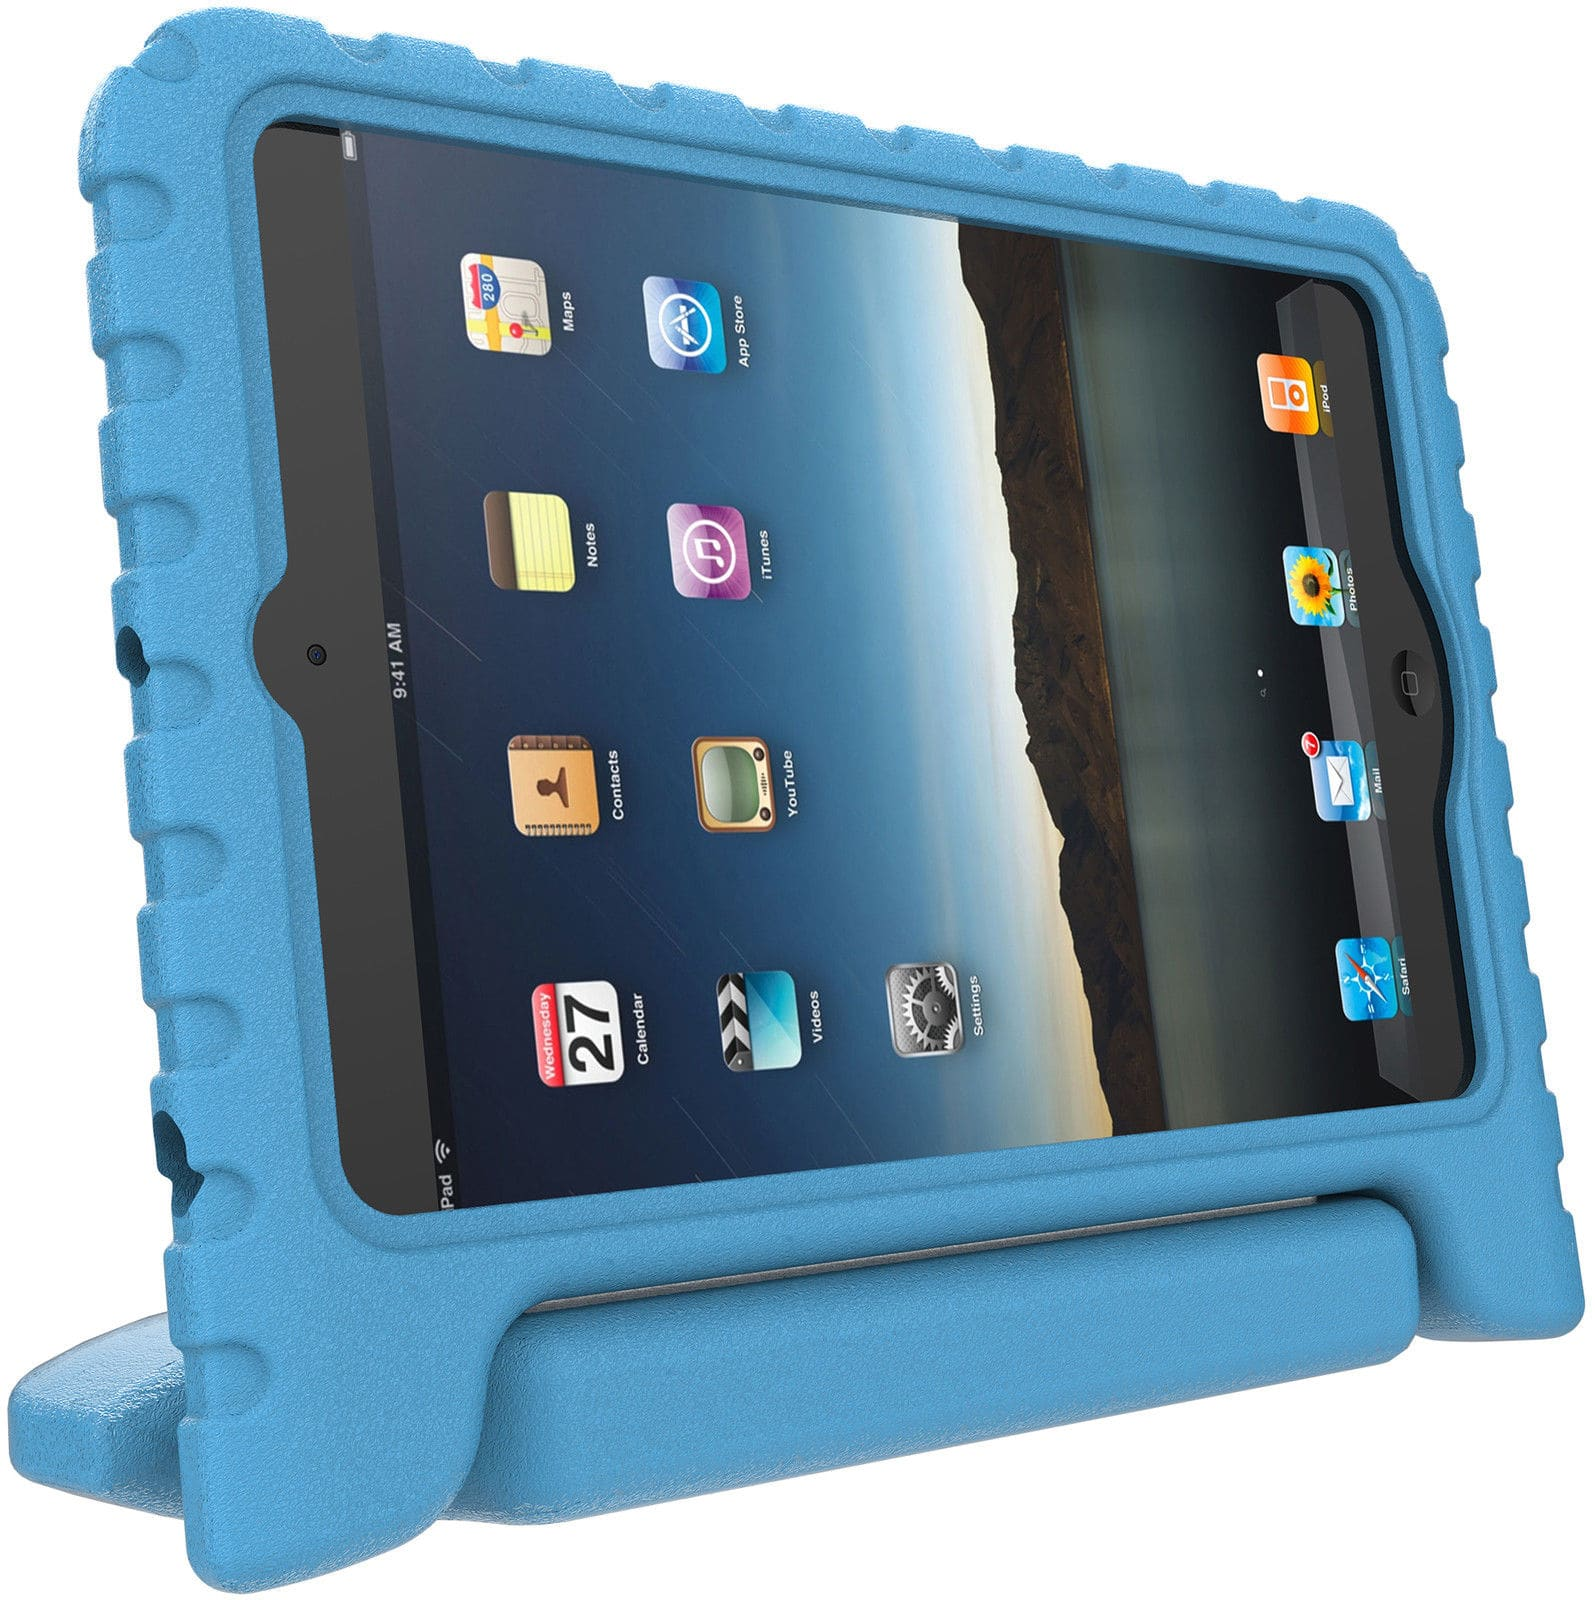 Shockproof Foam Kids Case with Handle for Apple iPad 2 3 4 Air Mini $9.09